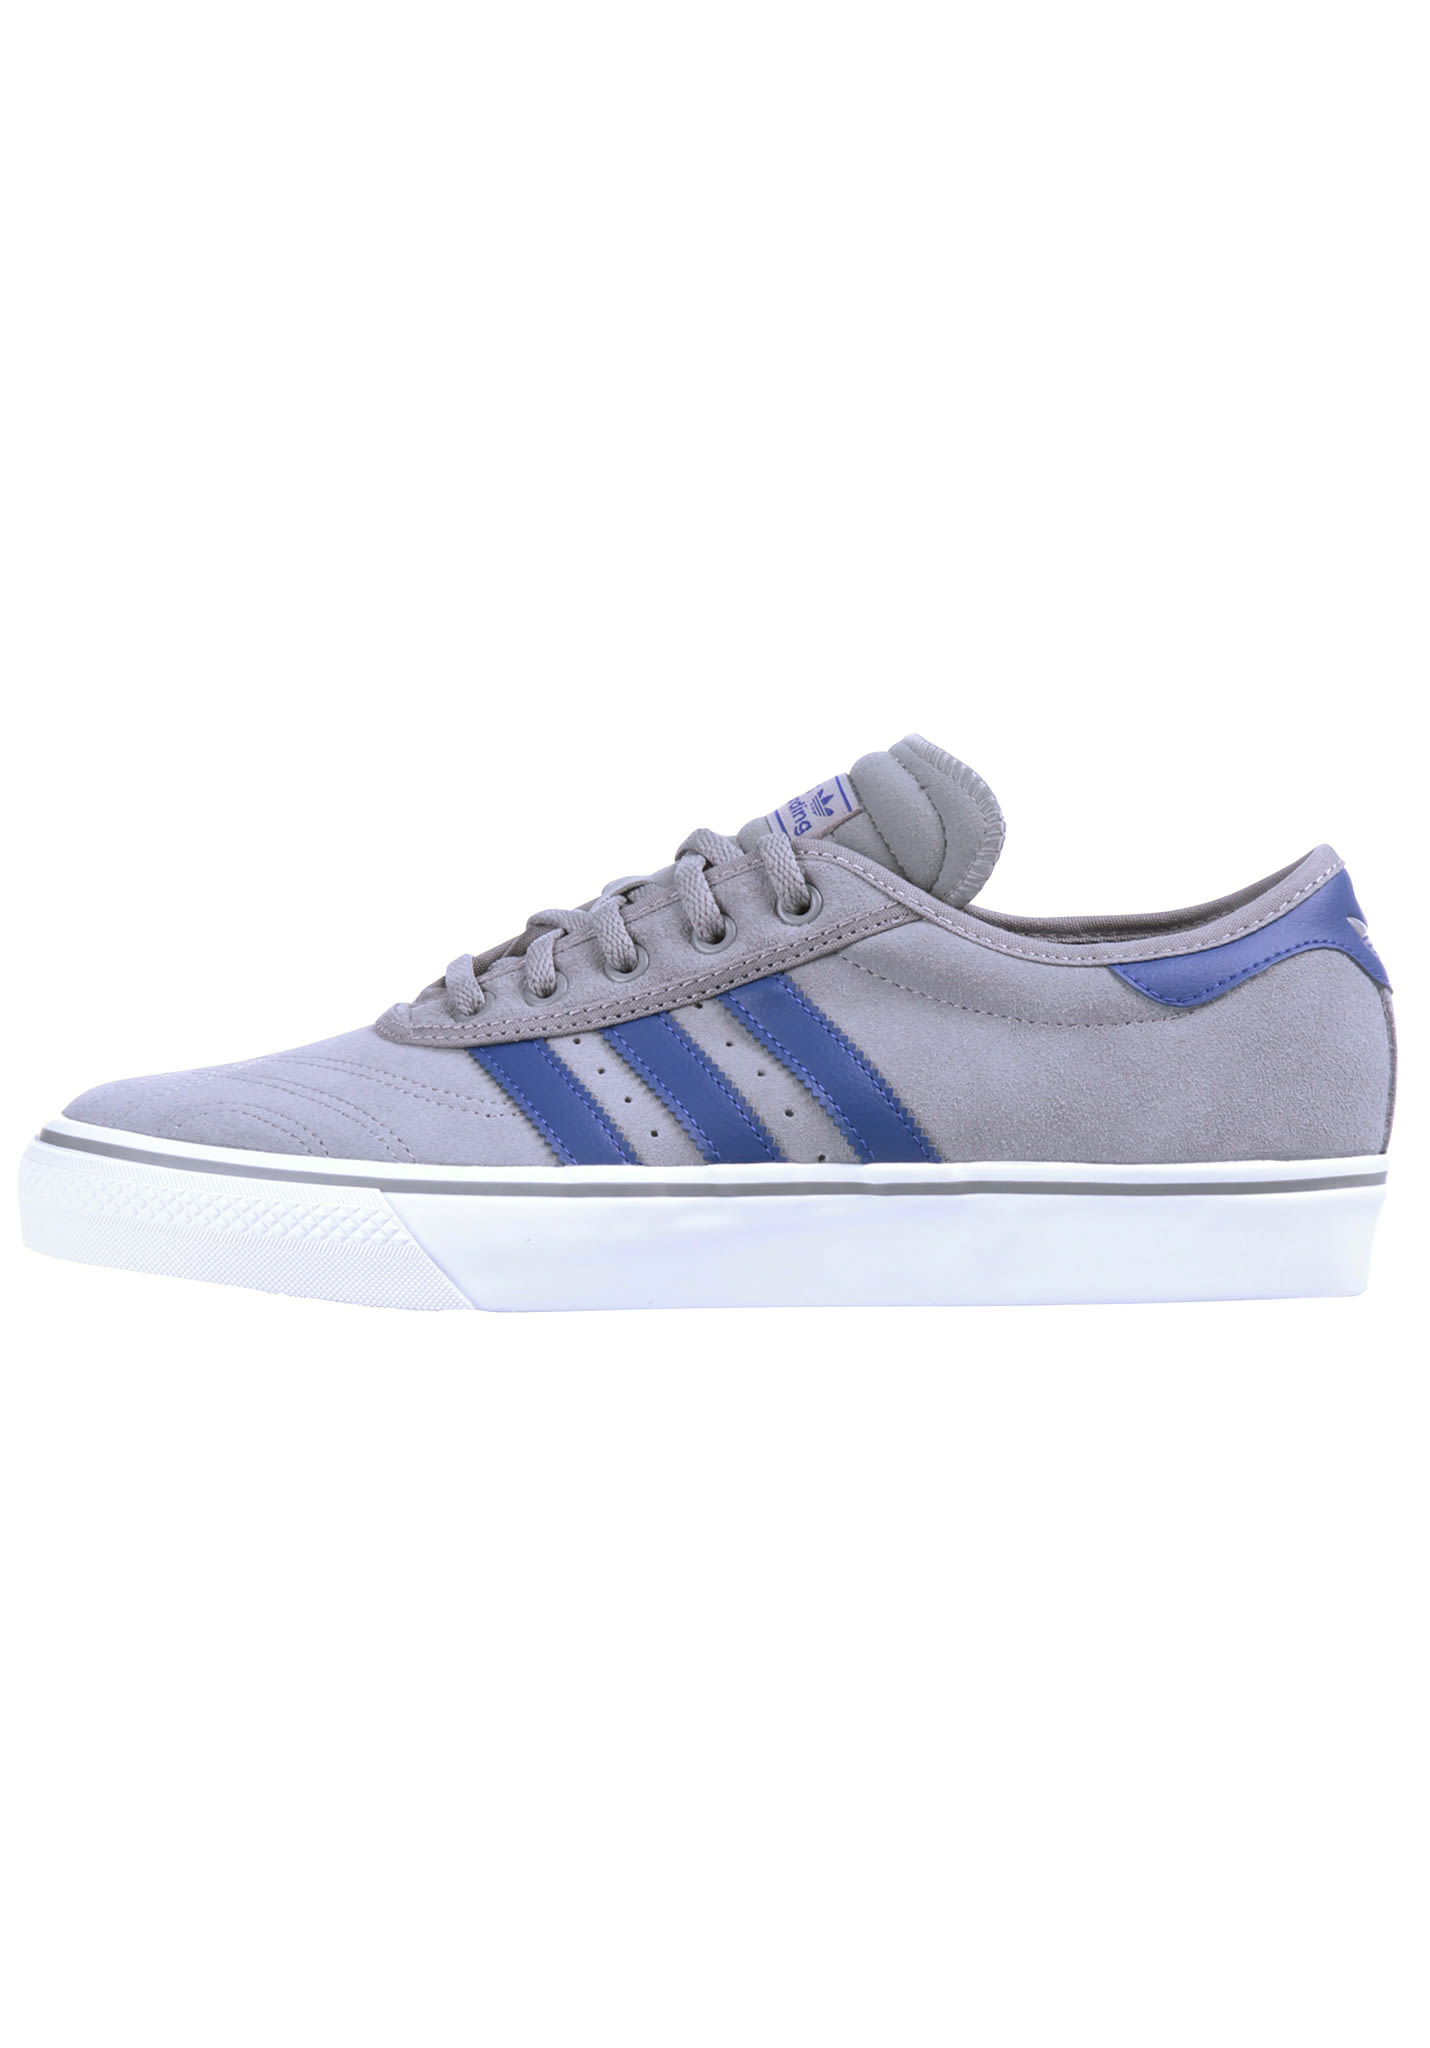 new arrival 89456 affff Adidas Skateboarding Adi-Ease Premiere - Sneakers for Men - Grey - Planet  Sports